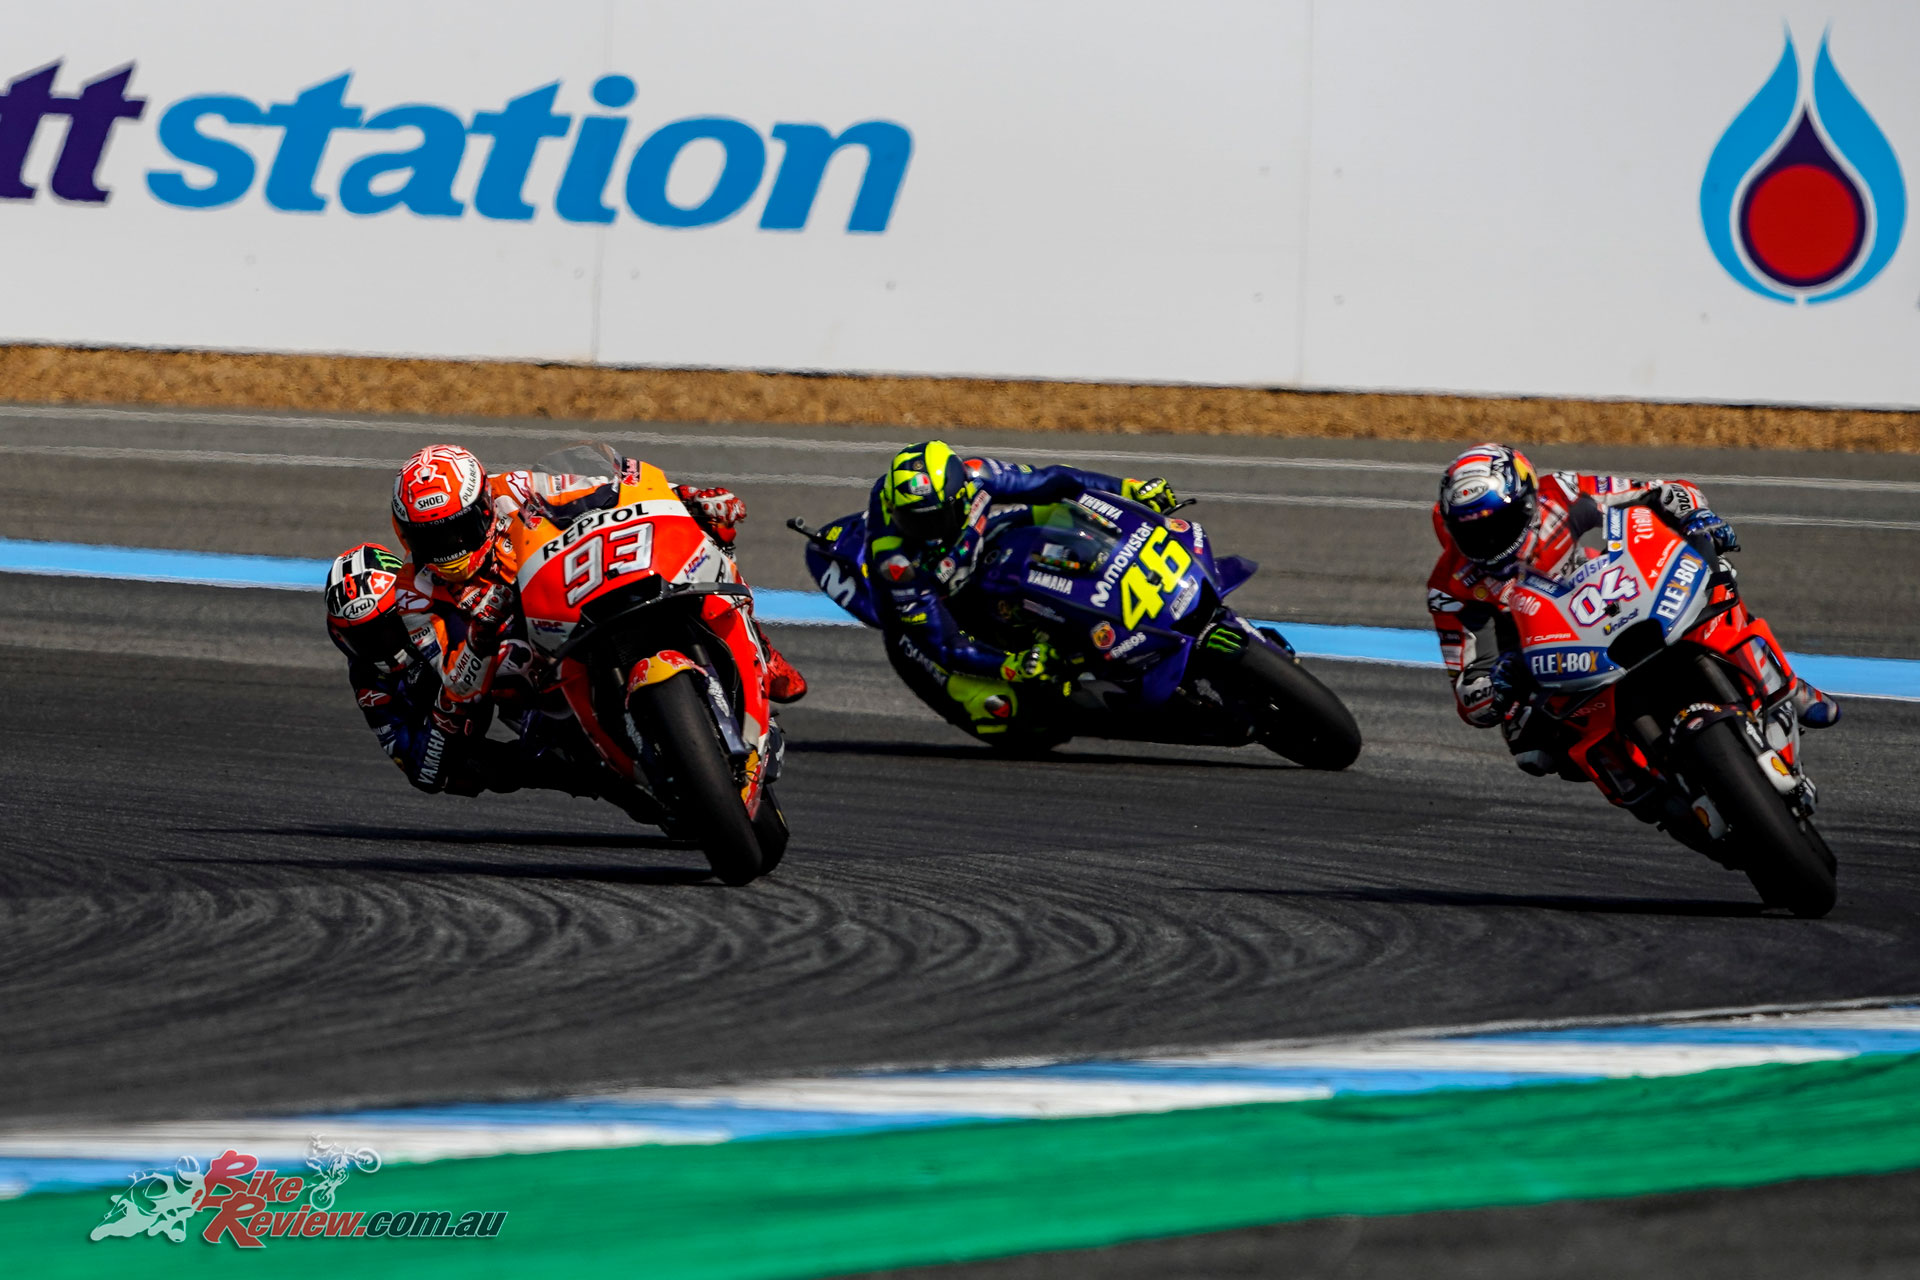 Marquez and Dovizioso duke it out in Thailand